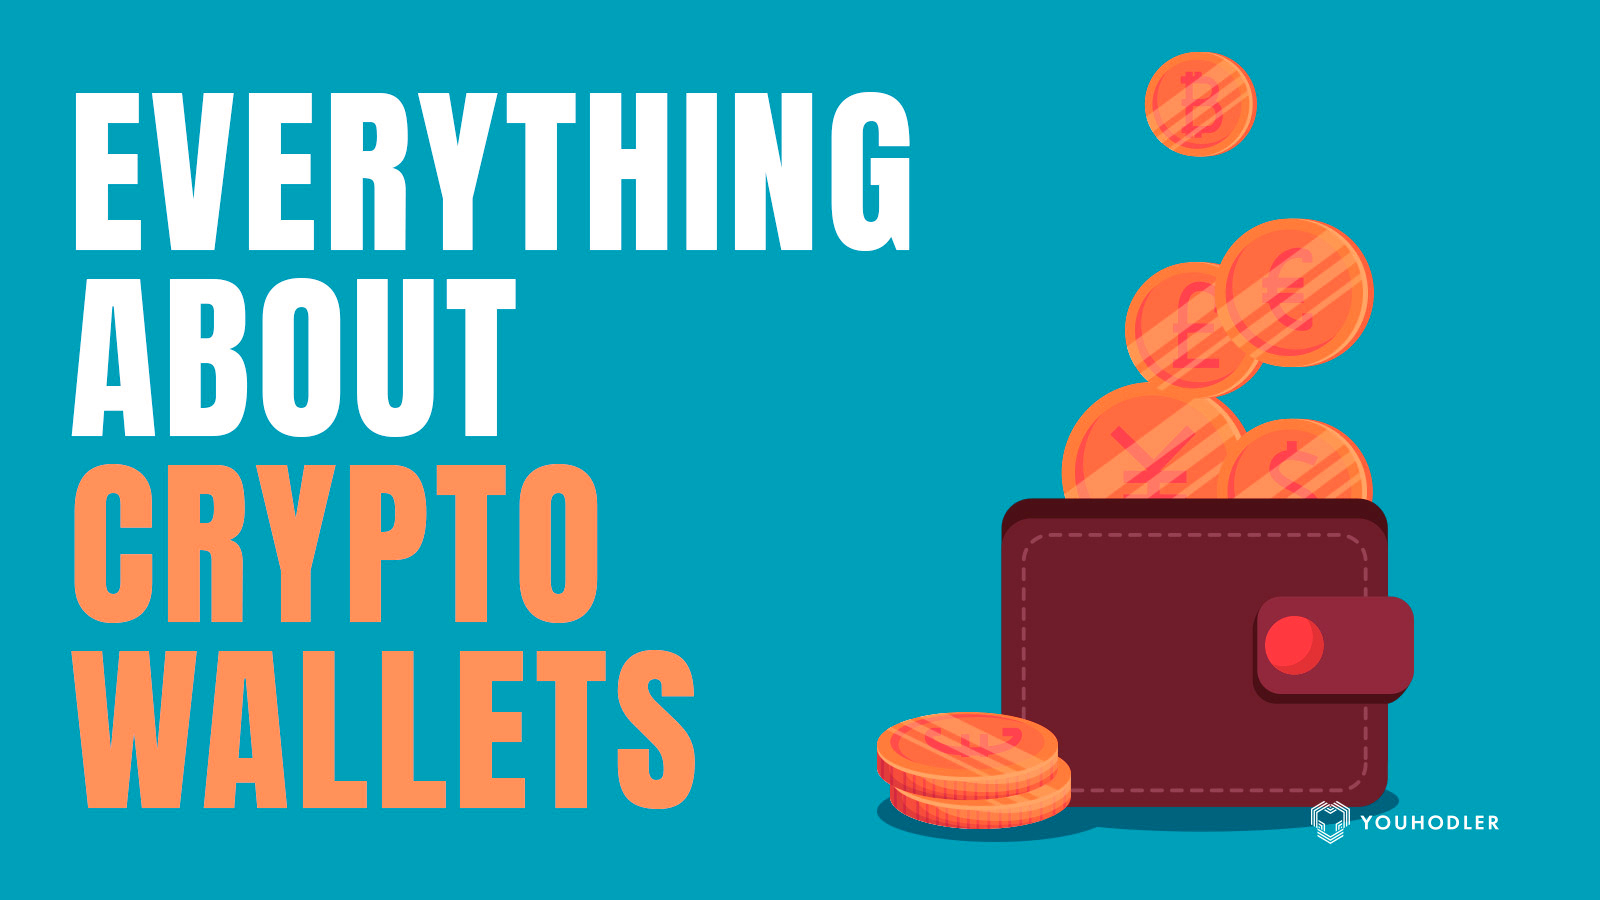 coins filling up a crypto wallet